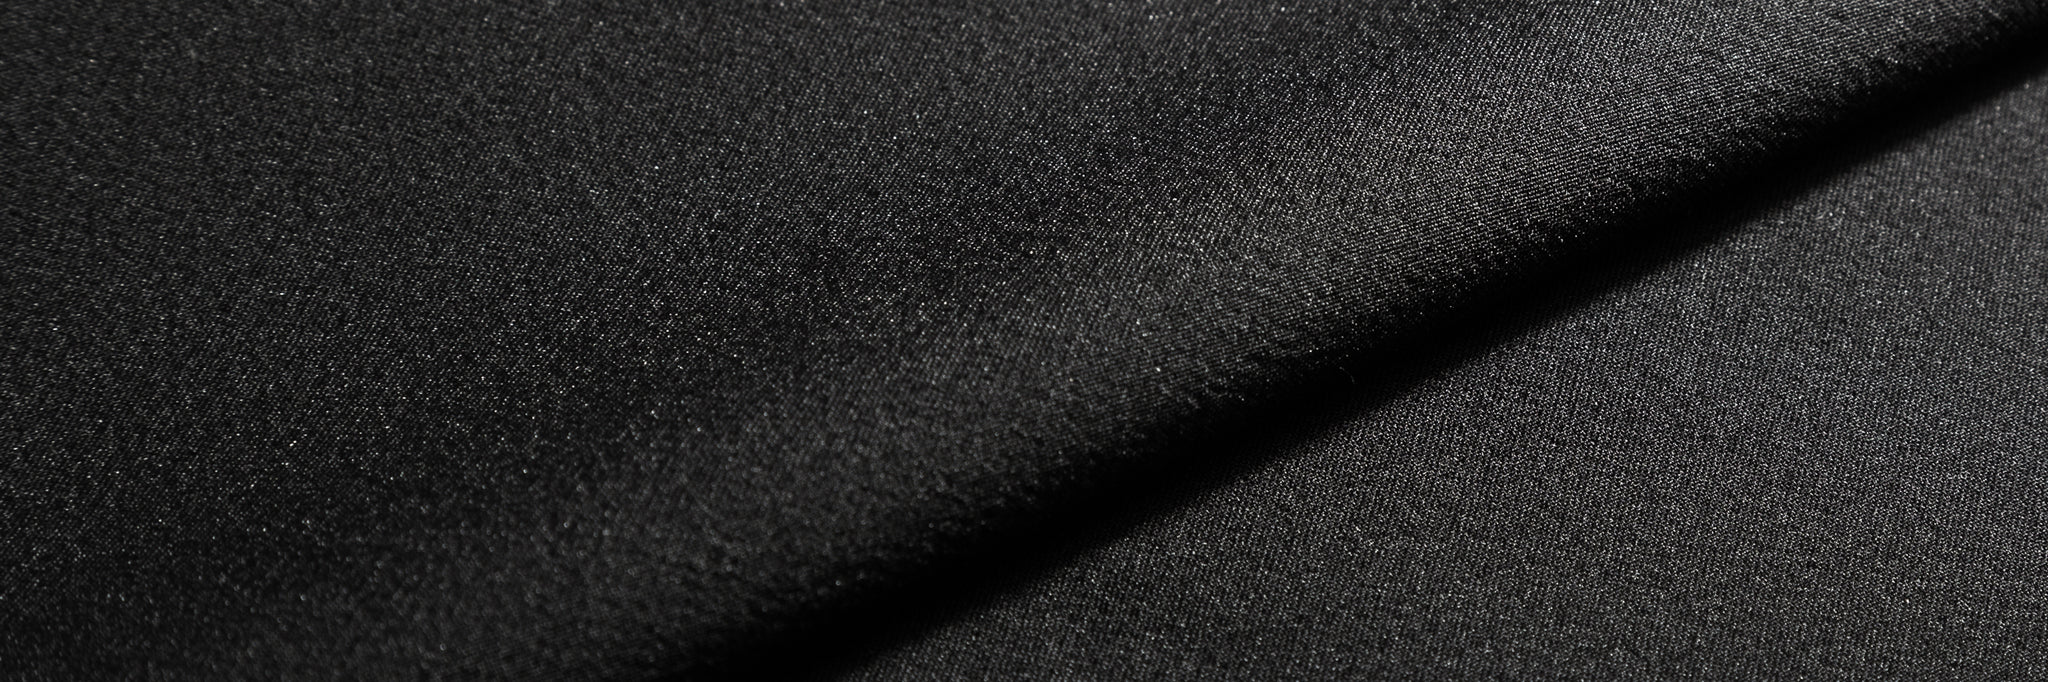 Tweave Fabric black